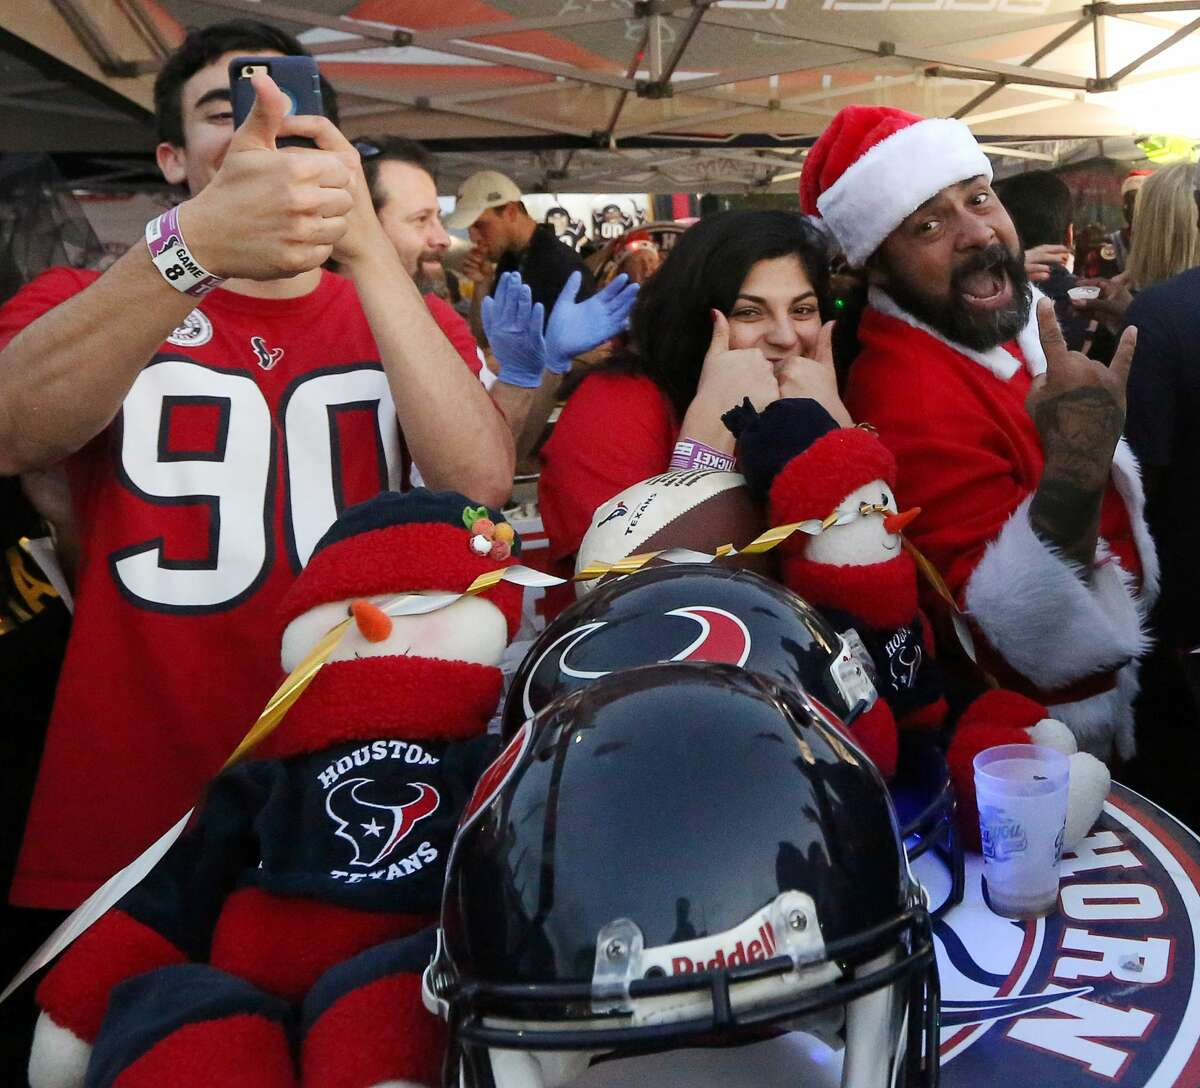 People pose for a photo before an NFL game between the Houston Texans and the Cincinnati Bengals, at NRG Stadium, Saturday, Dec. 24, 2016, in Houston. ( Jon Shapley / Houston Chronicle )